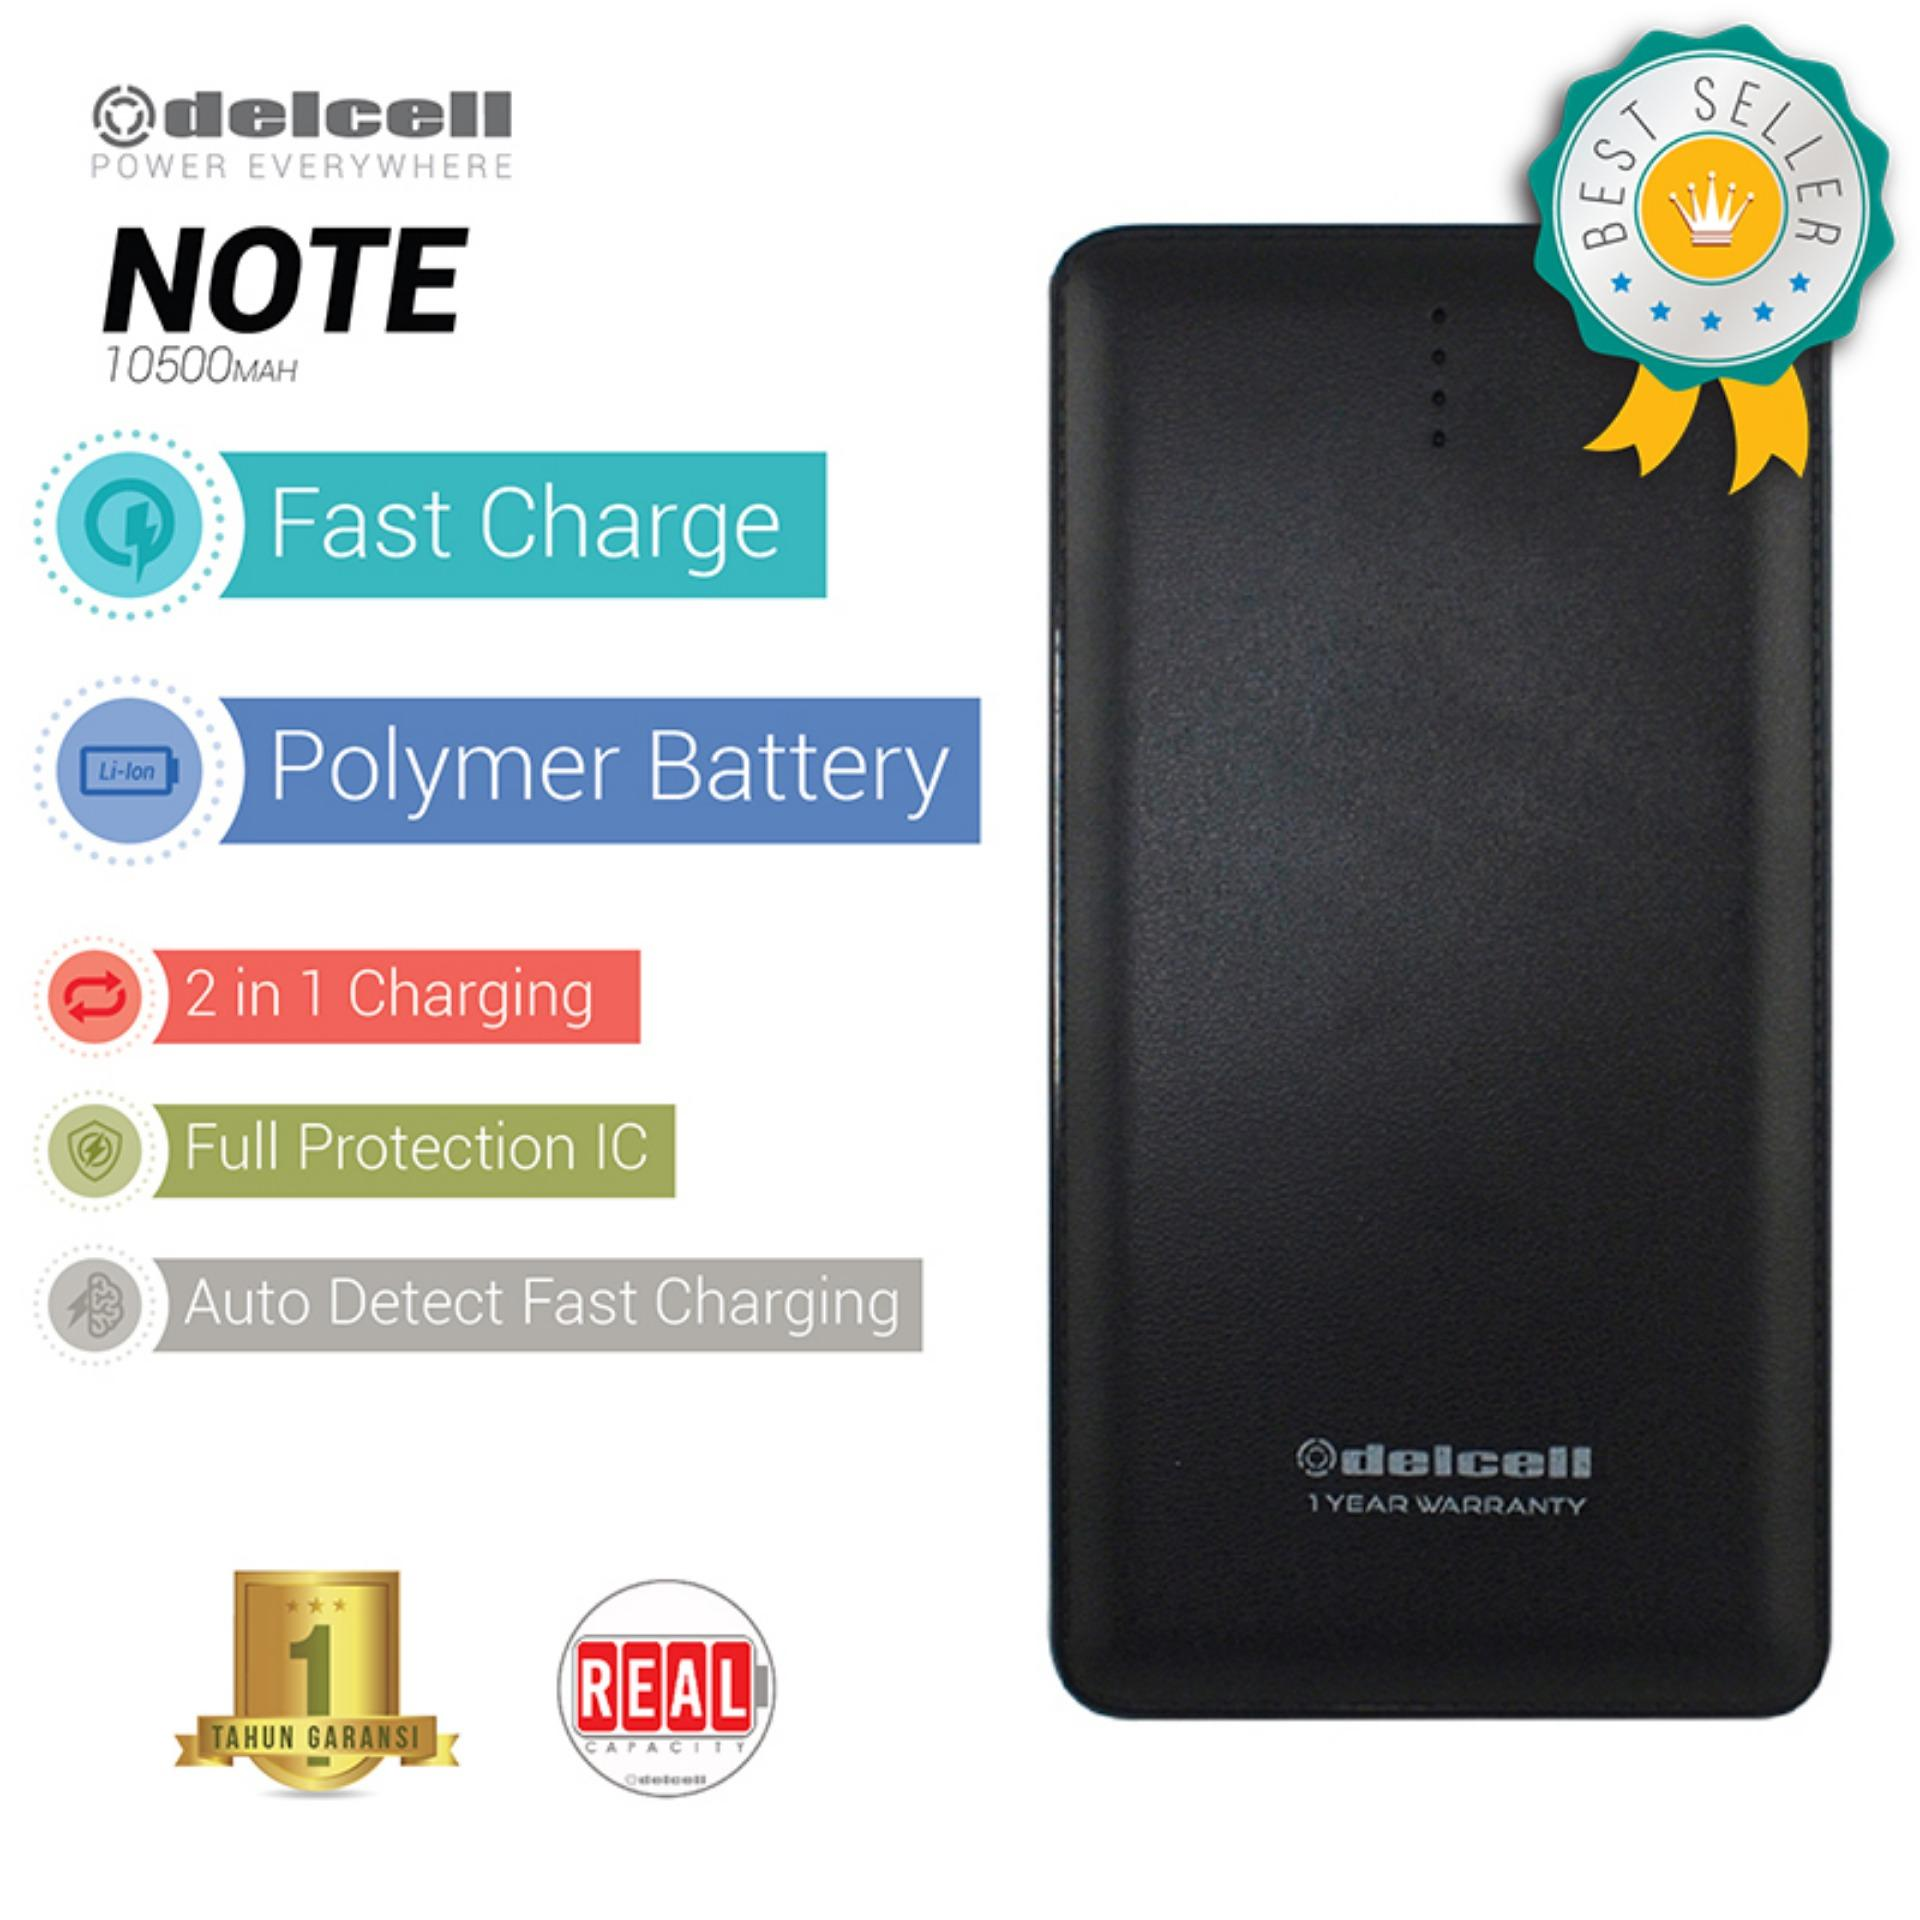 Delcell NOTE Powerbank 10500mAh Real Capacity Fast Charging Polymer Battery - Hitam